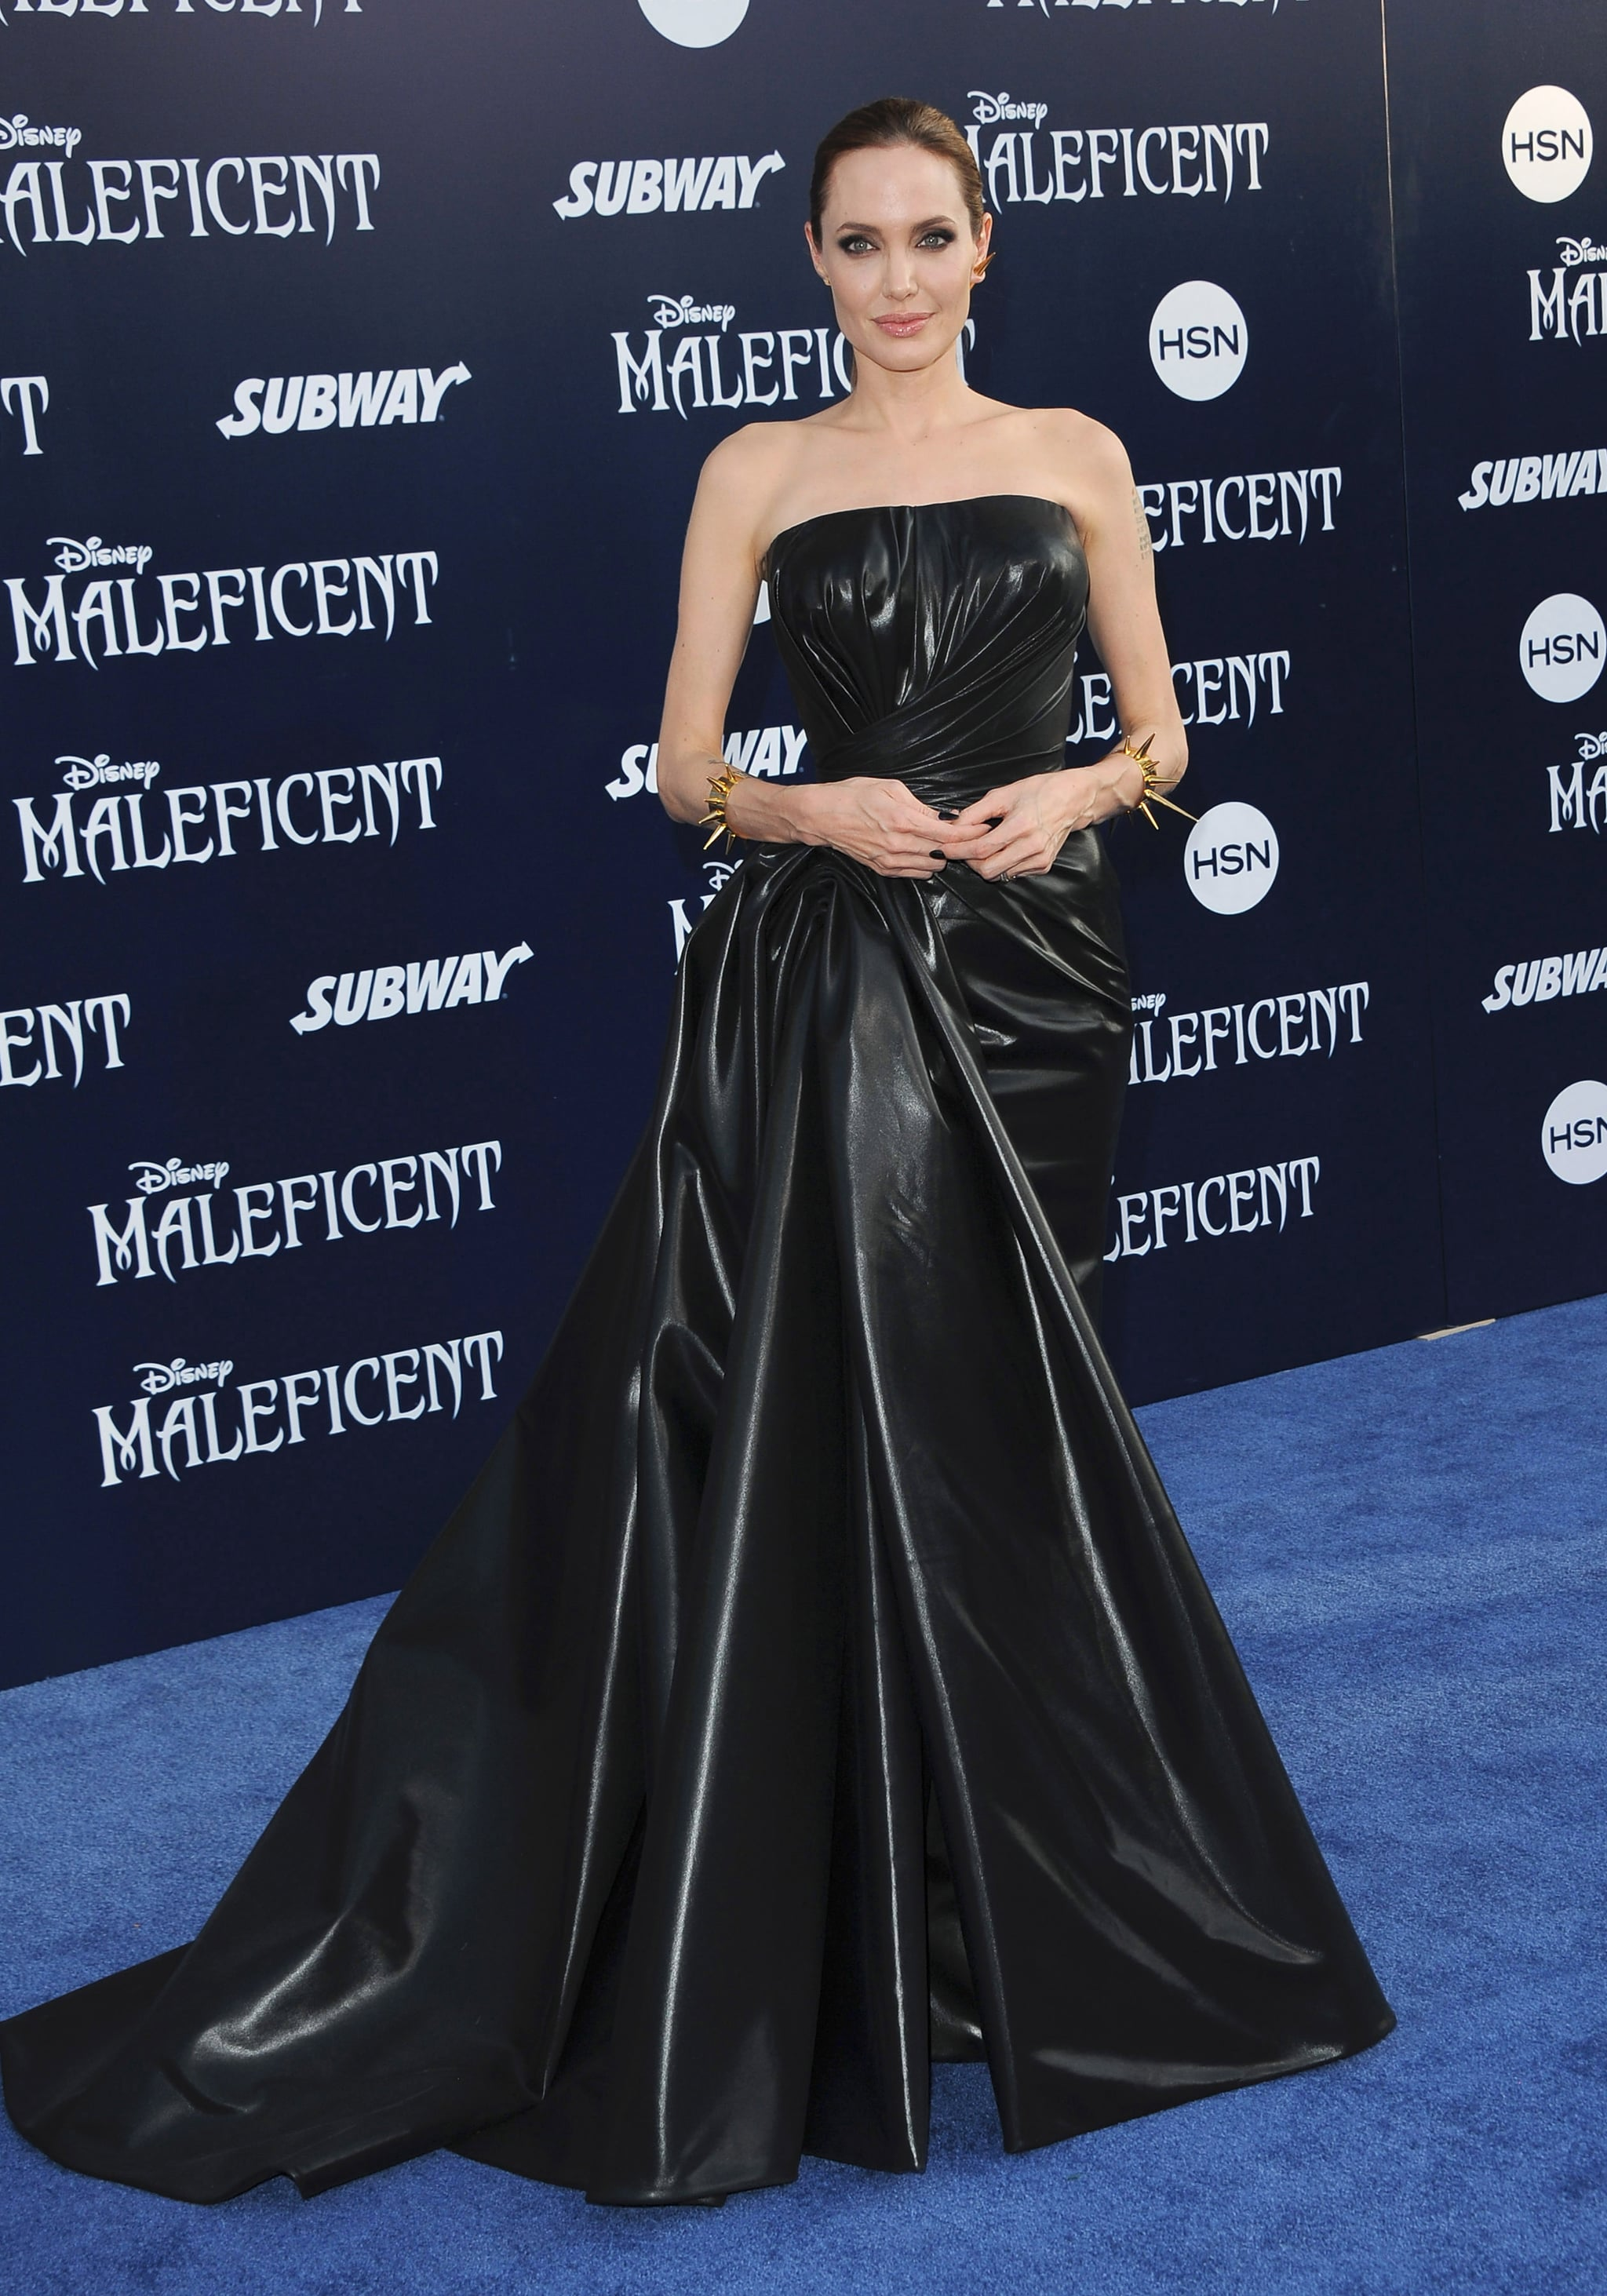 Angelina Jolie At The 2014 Maleficent Premiere Angelina